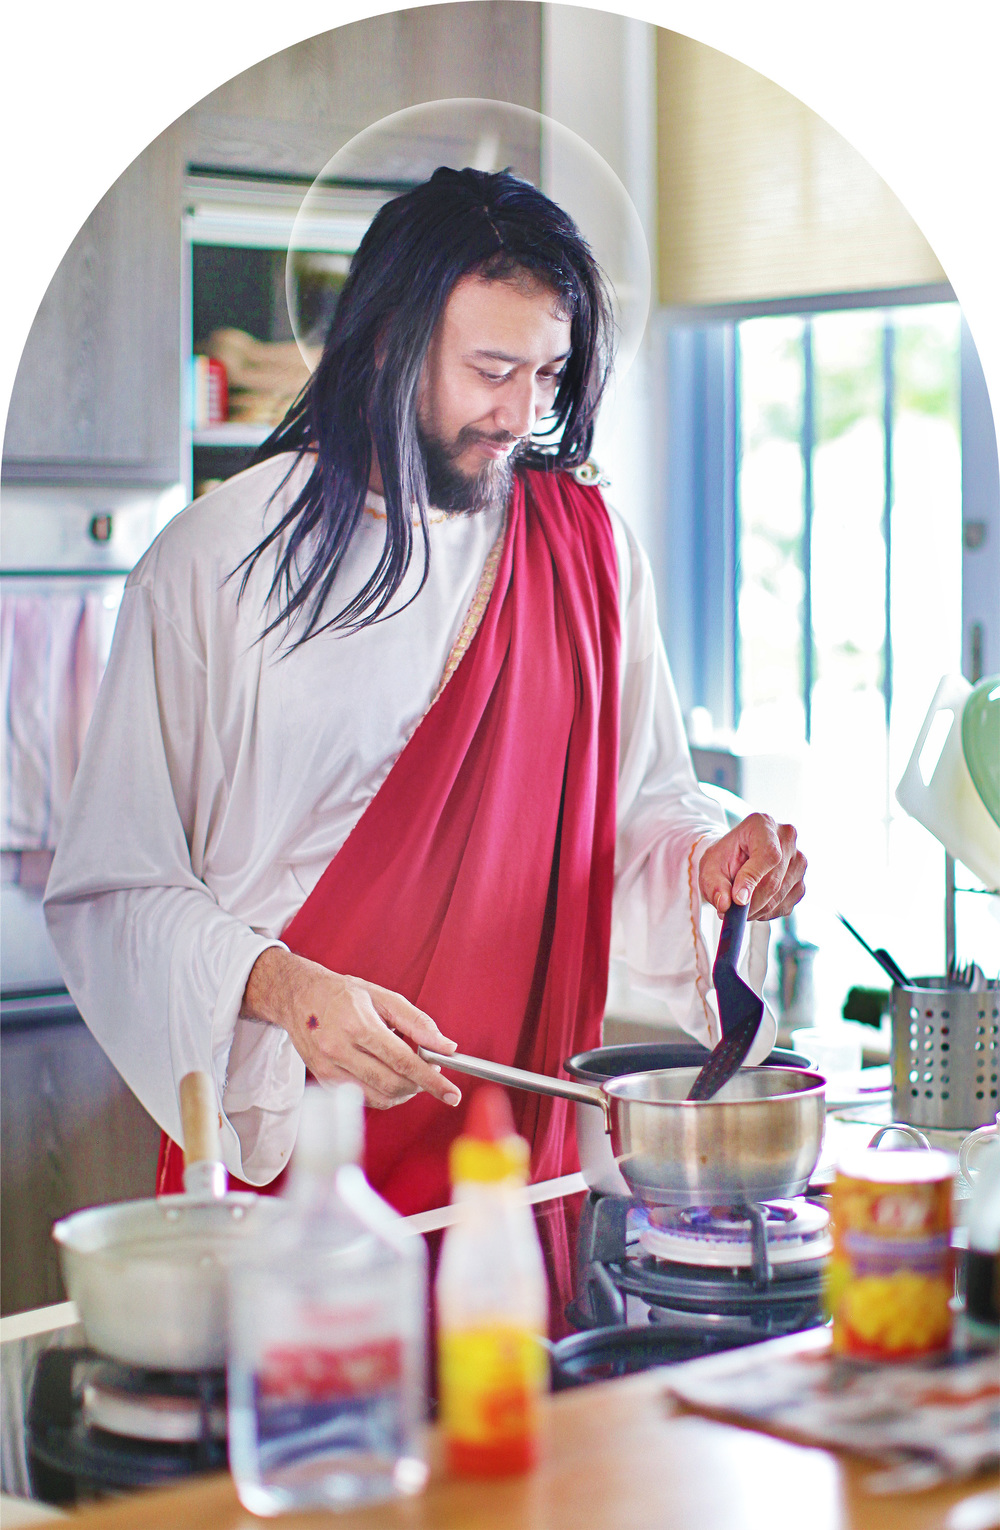 What's Cooking Jesus?